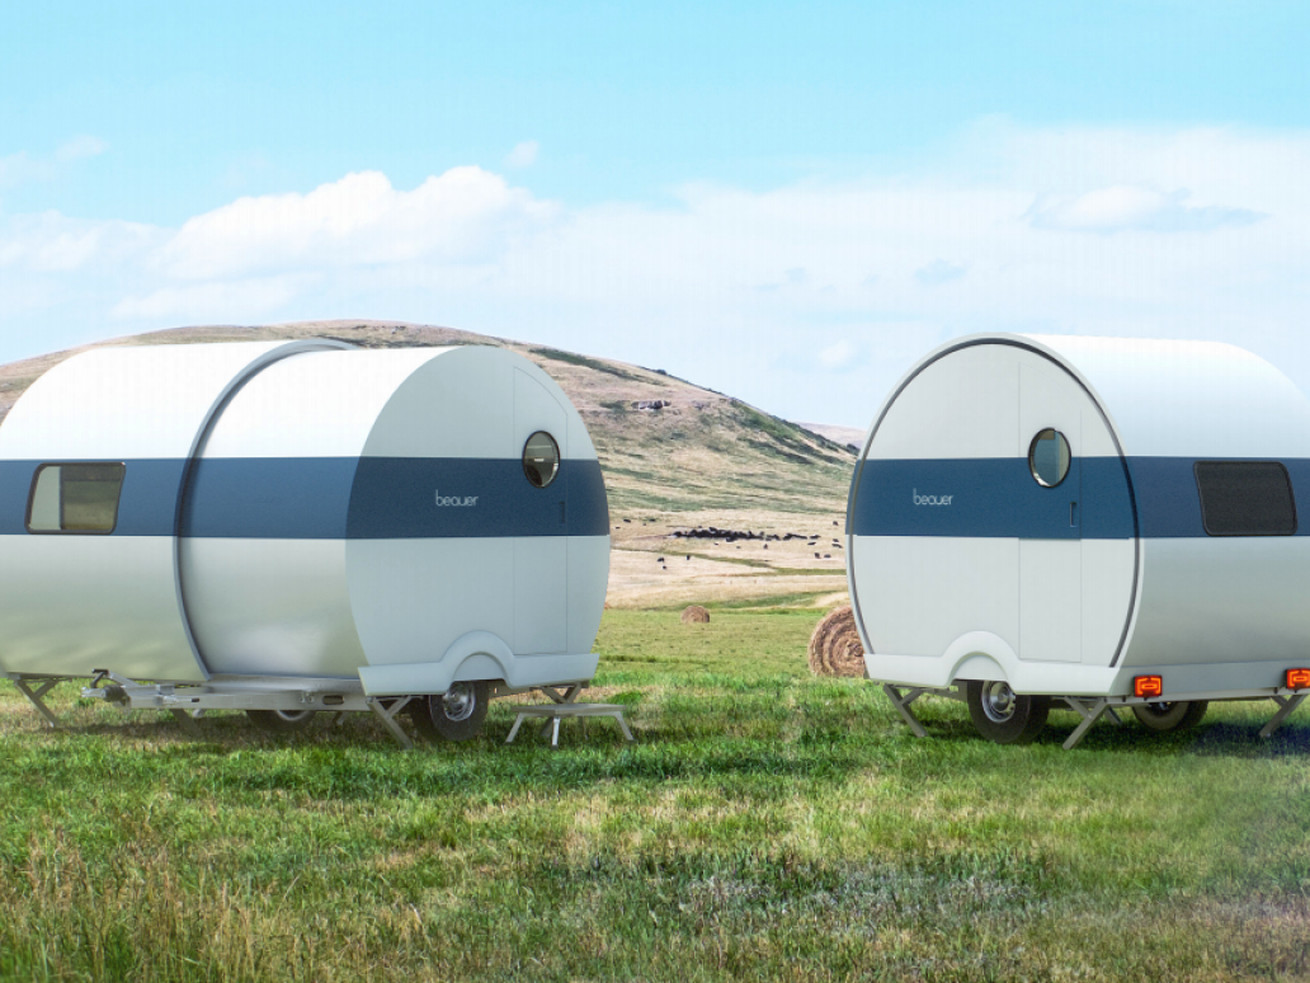 Tiny camper trailer expands to double its size in 60 seconds